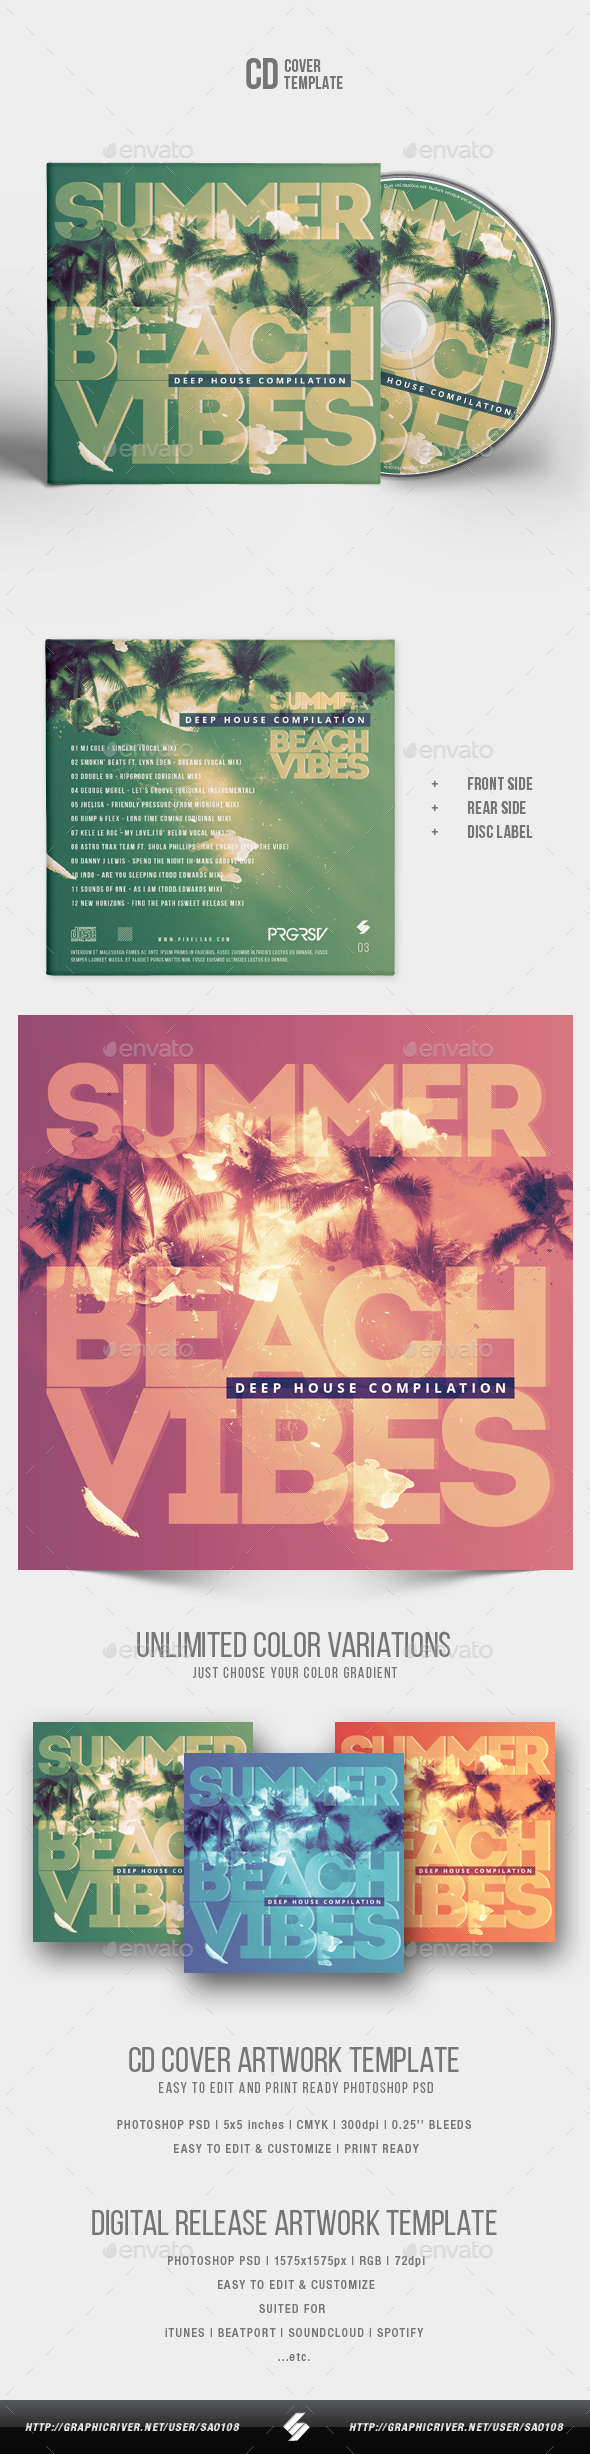 GraphicRiver Summer Beach Vibes House Music CD Cover Artwork Template 20370568